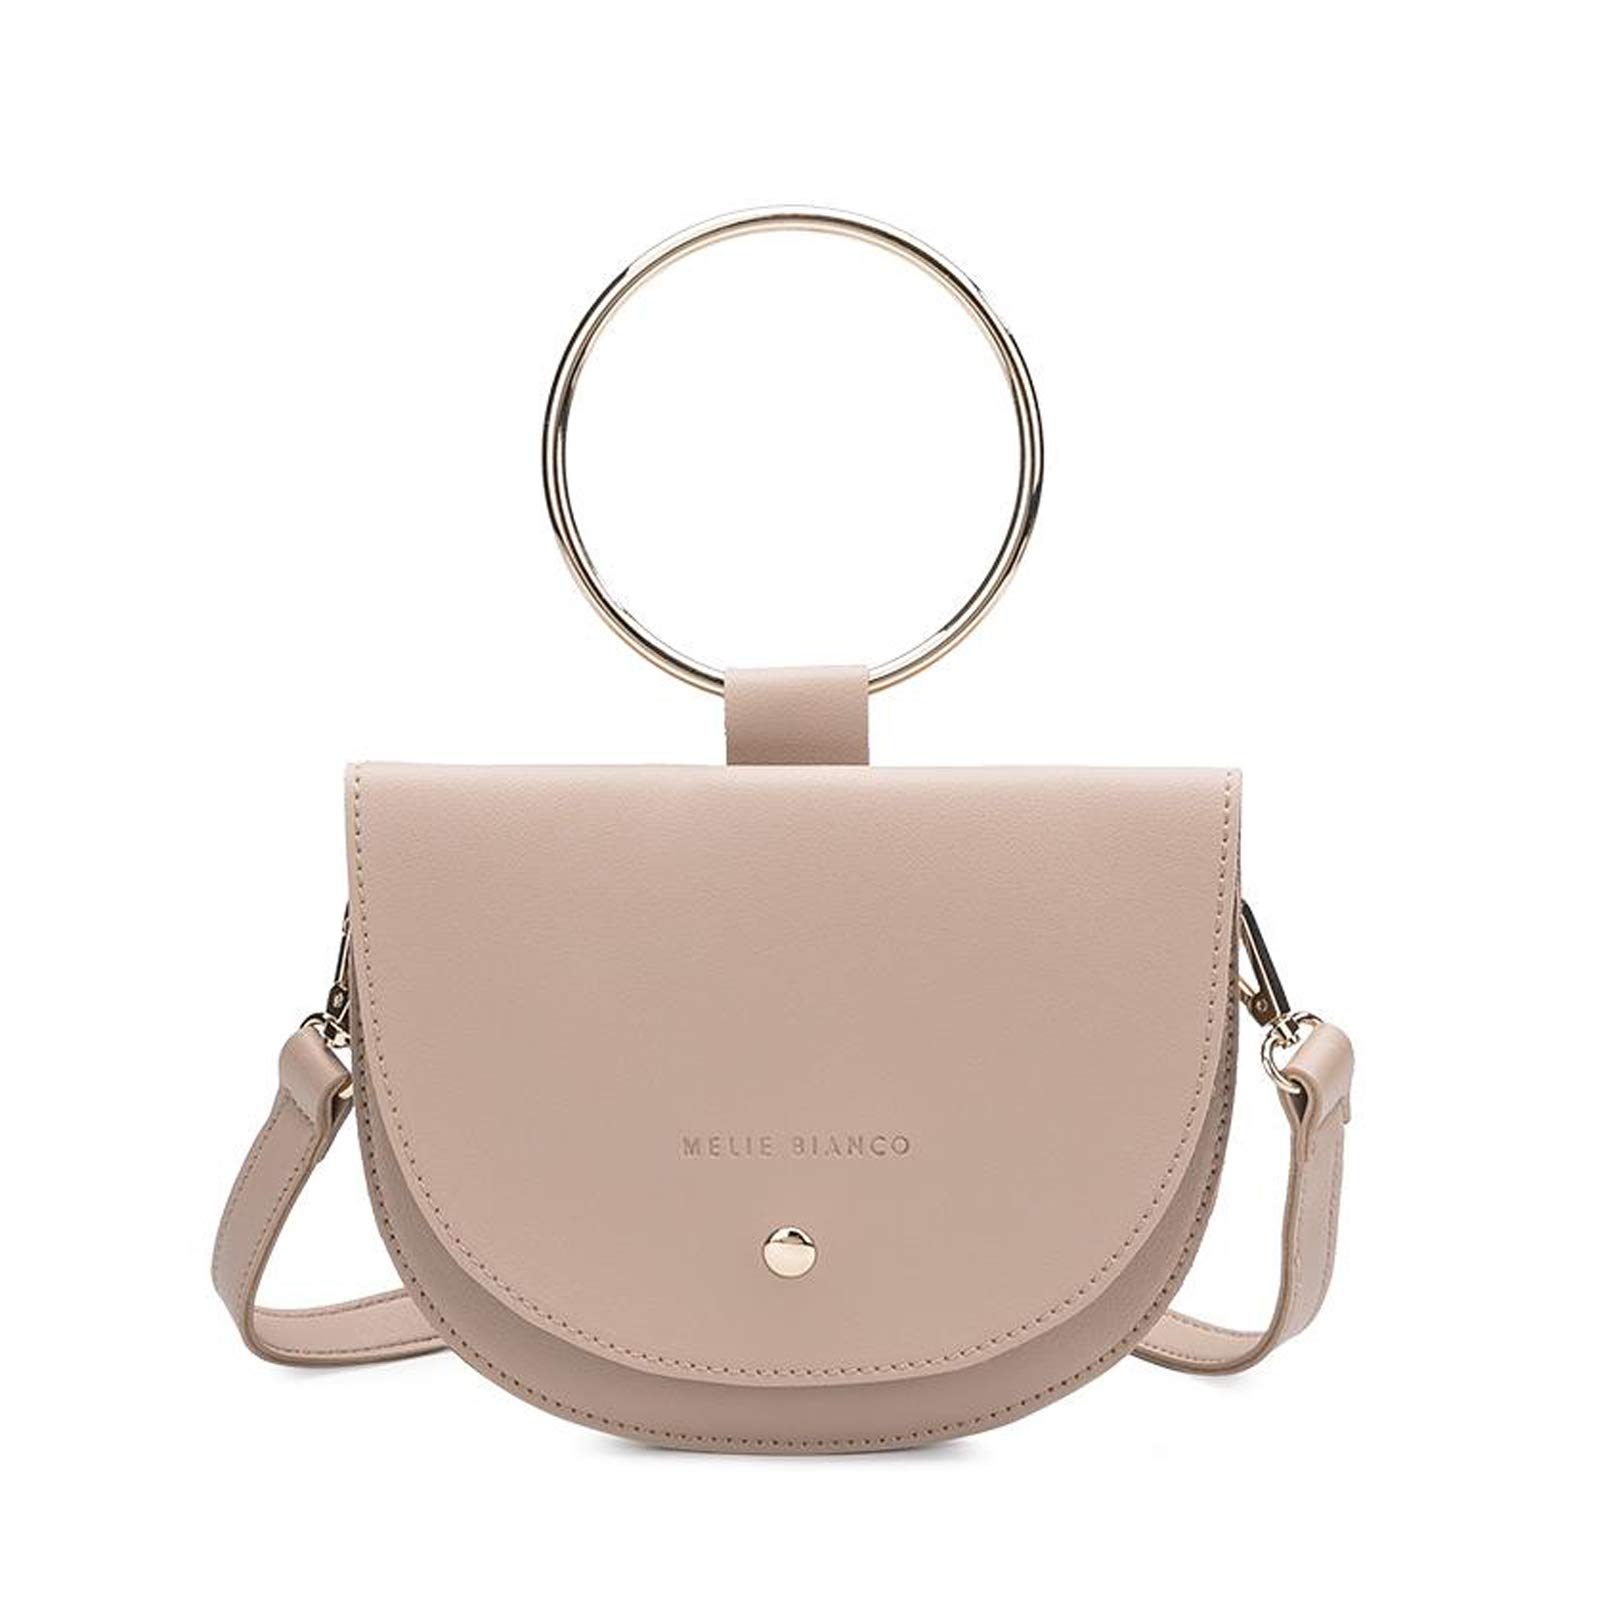 5f4ec4e4995e7f Melie Bianco Felix Ring Vegan Leather Crossbody Bracelet Bag, Nude ...